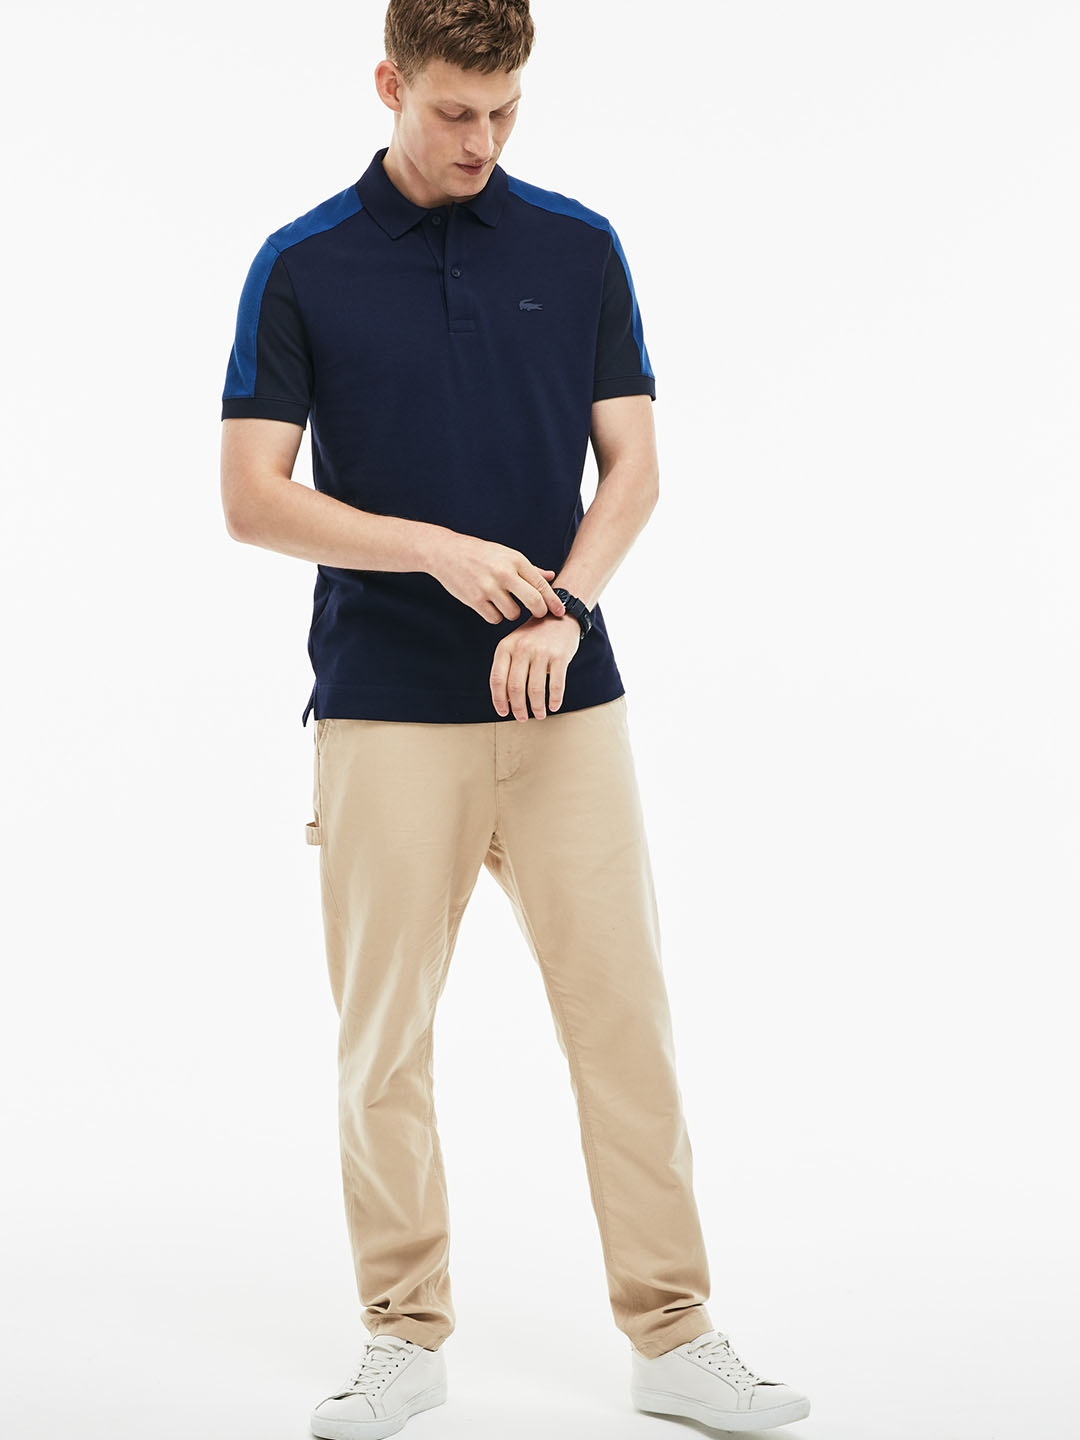 1f171848 Buy Lacoste Men Navy Blue Solid Polo T Shirt - Tshirts for Men ...